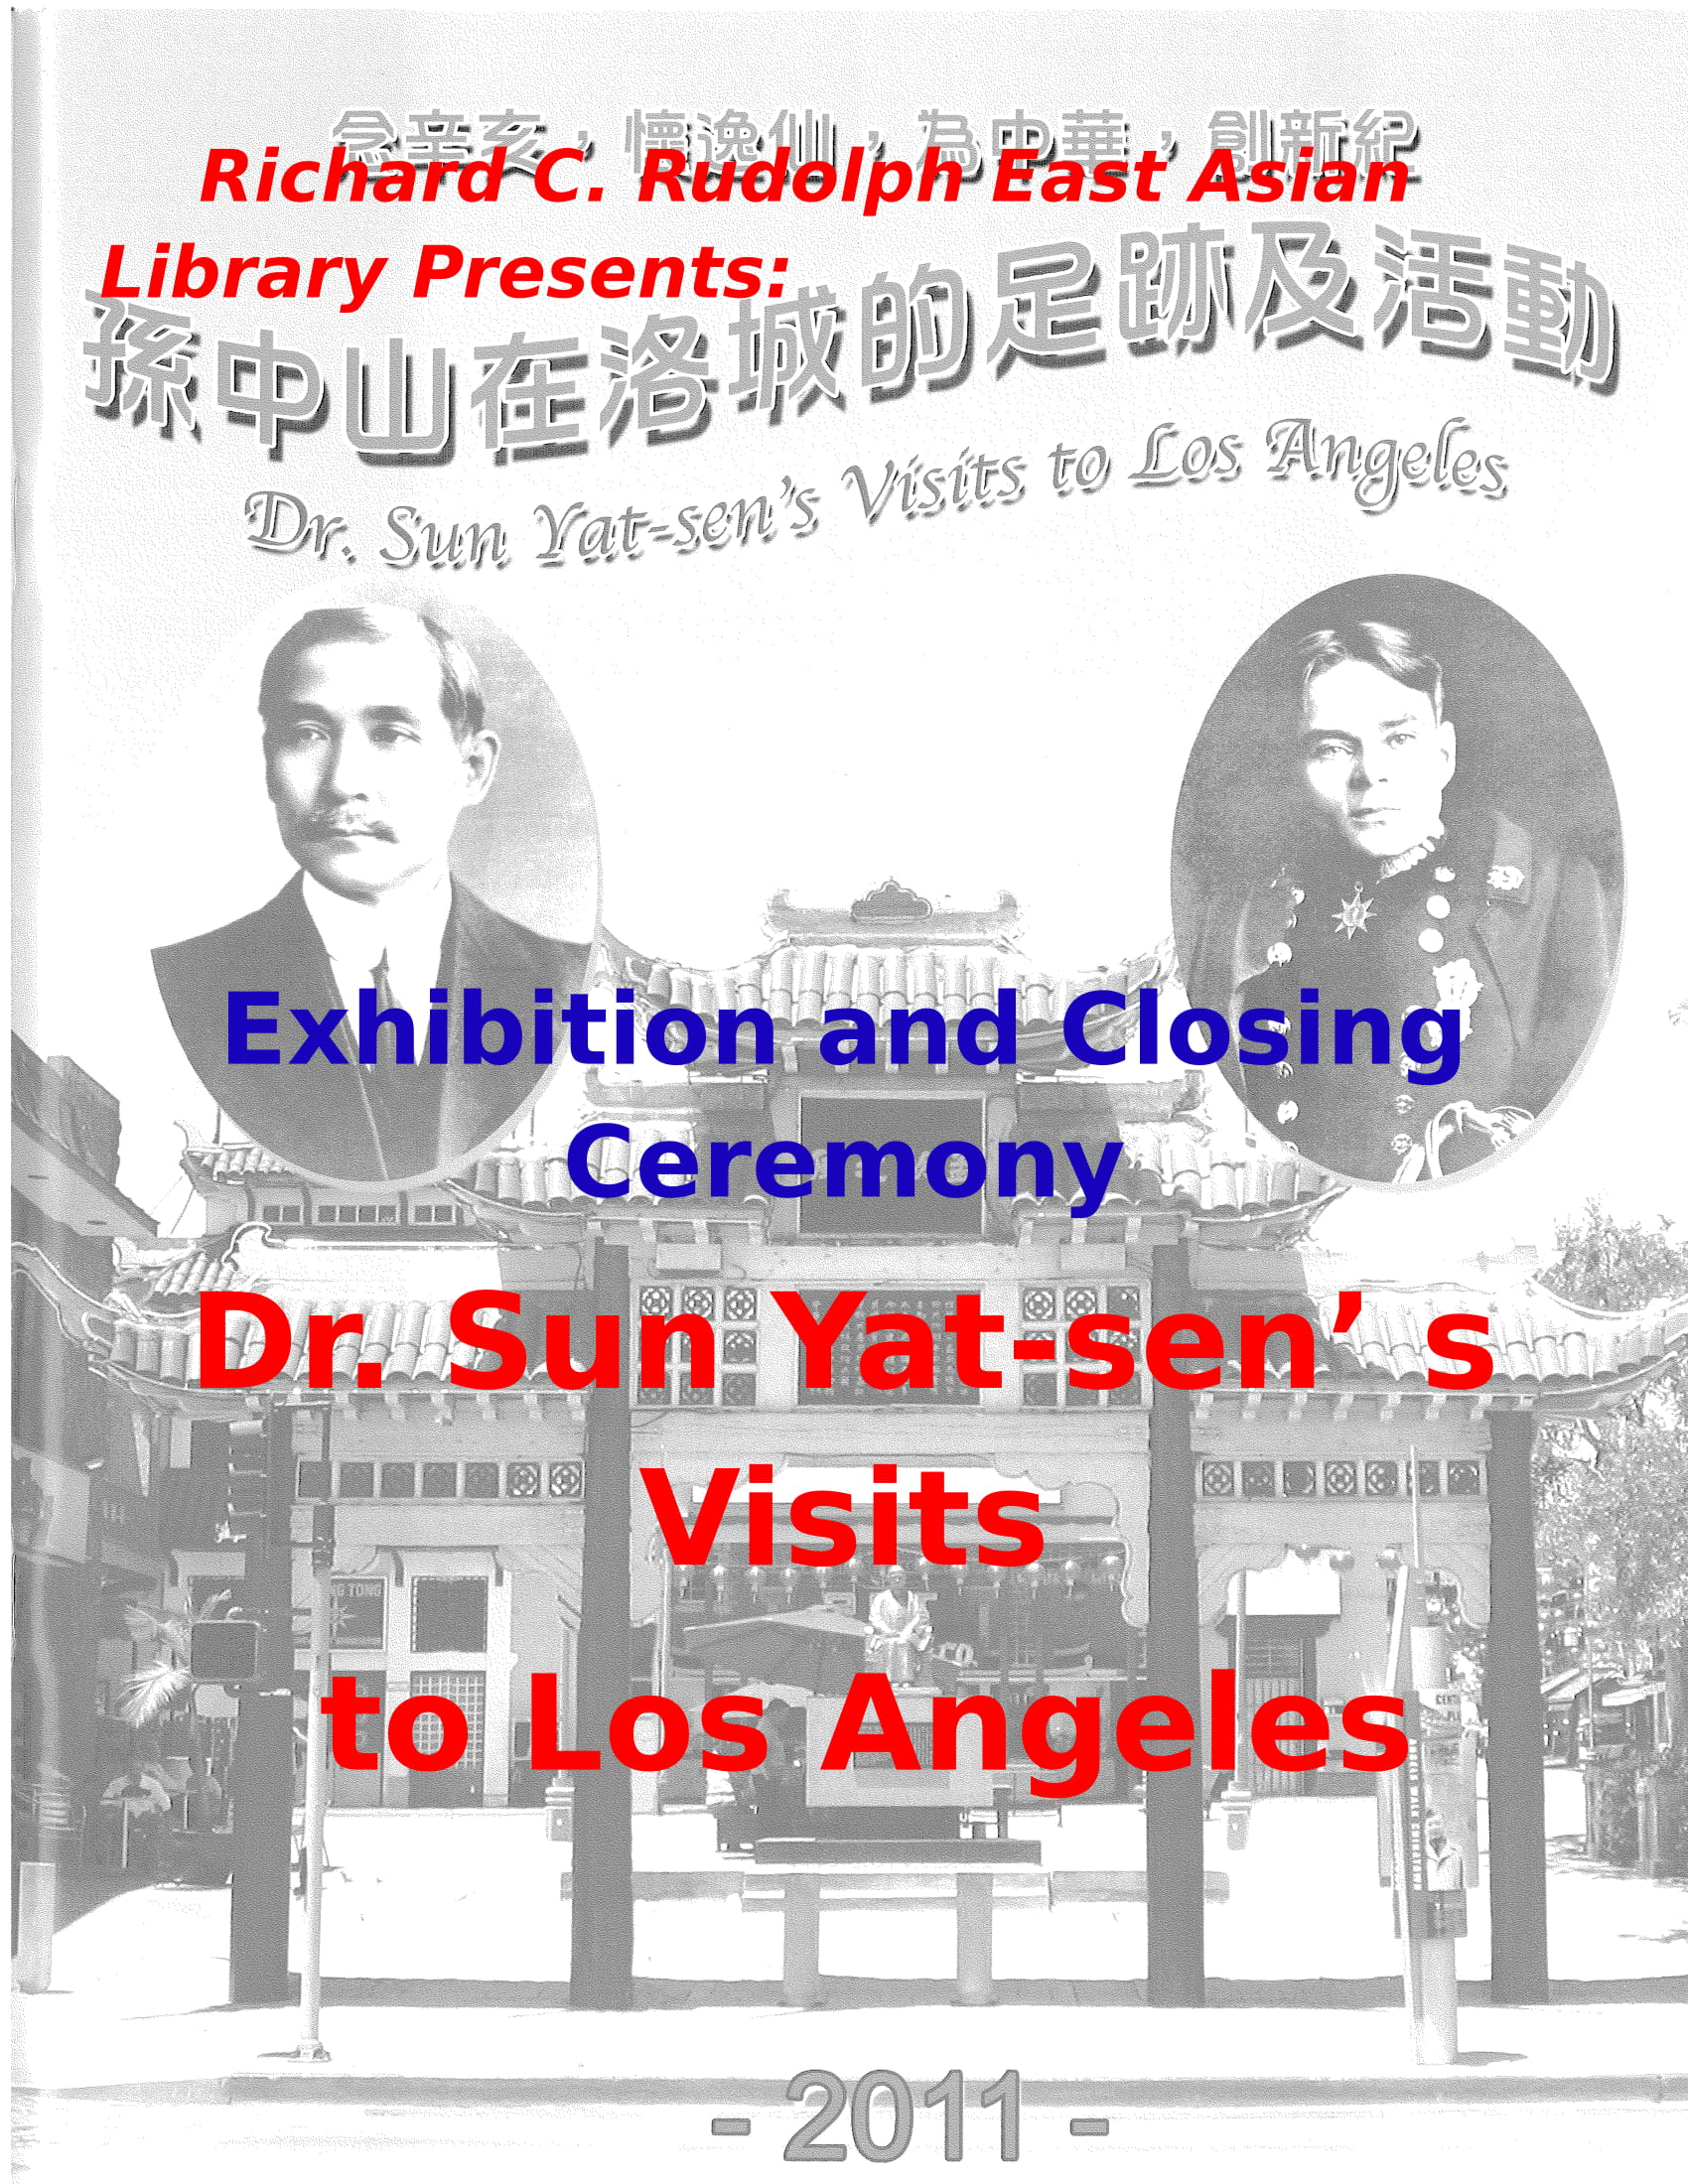 Dr. Sun Yat-sen's Visits to Los Angeles: Touring Exhibition and Closing Ceremony